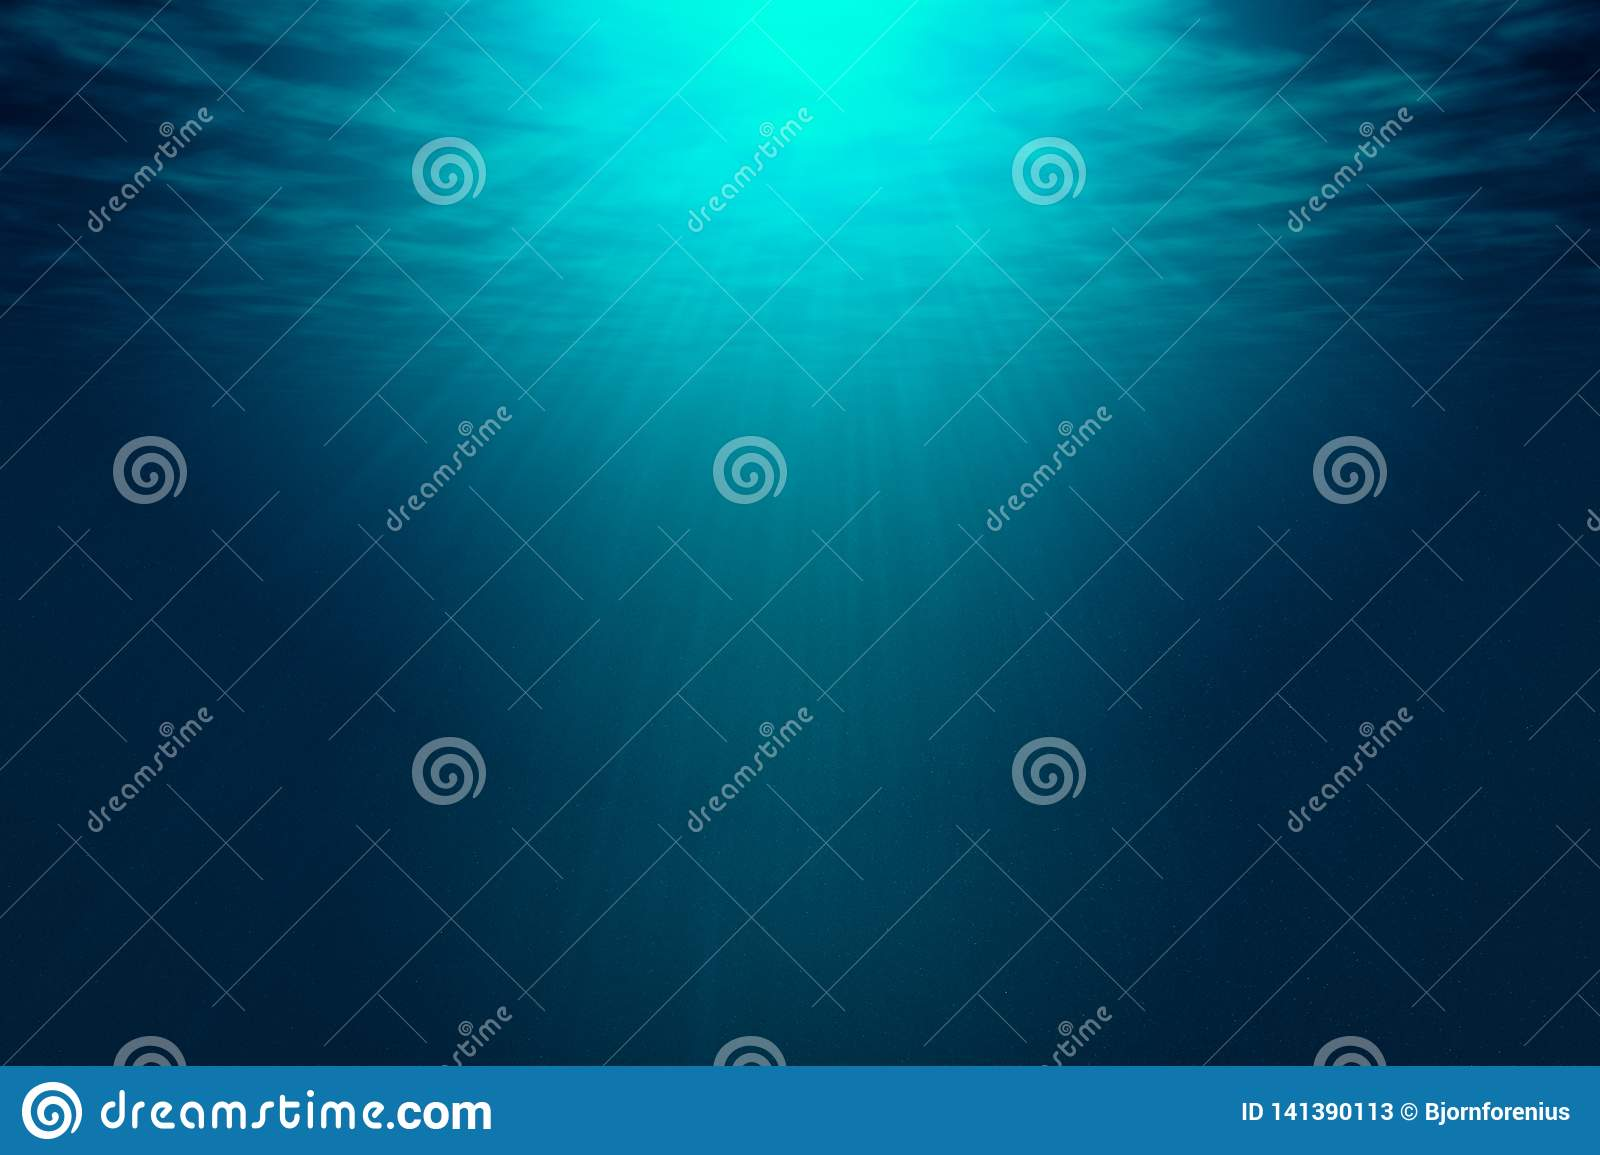 Deep blue sea with rays of sunlight, ocean surface seen from underwater.